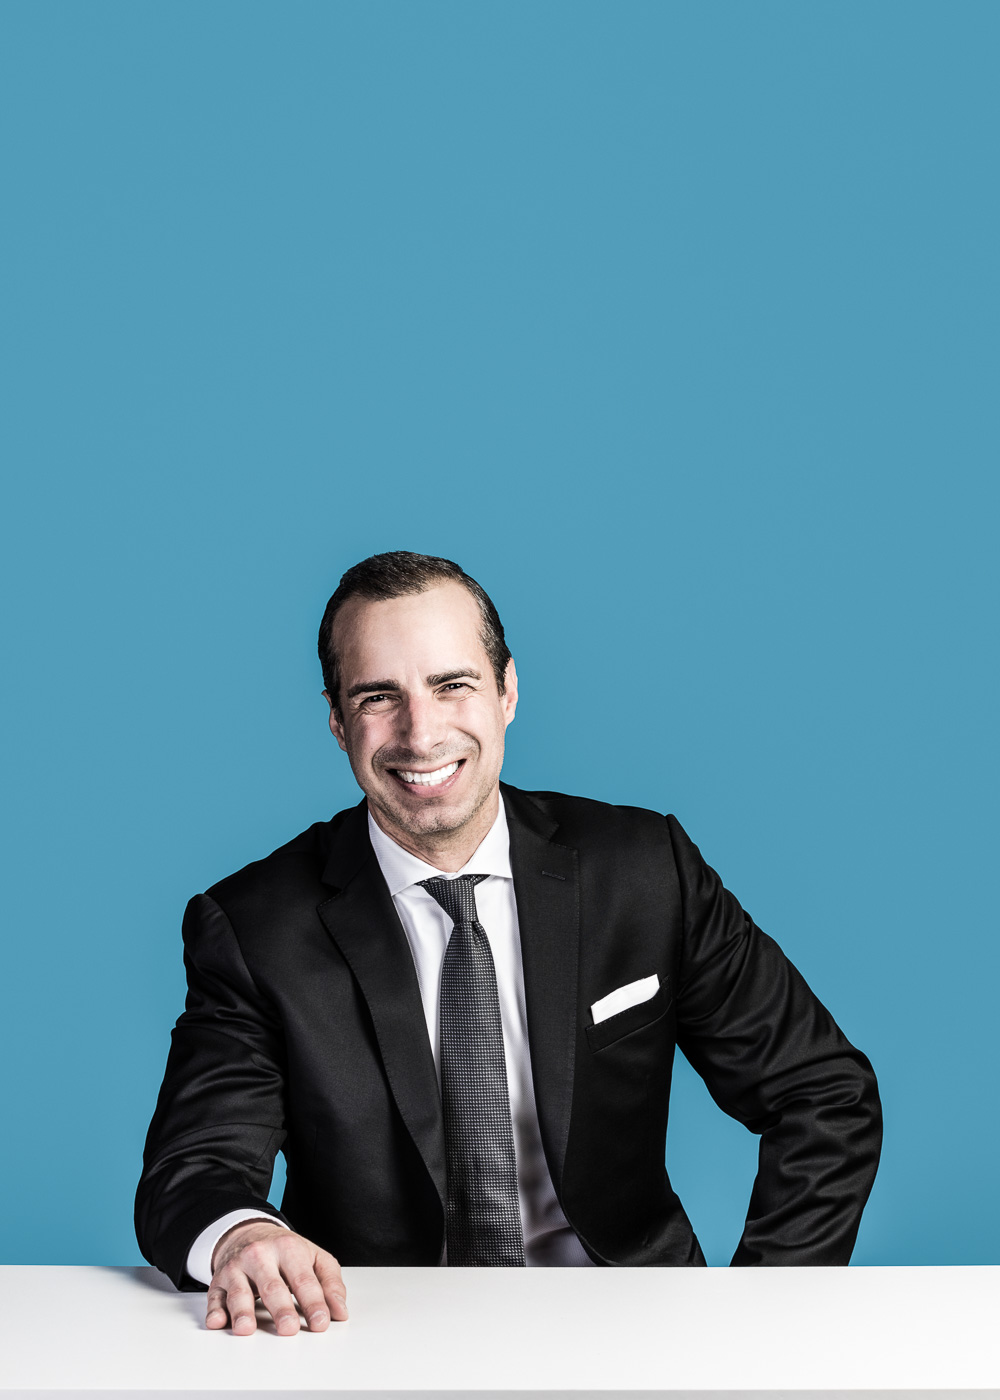 A Martínez, NPR host - Morning Edition and Up First